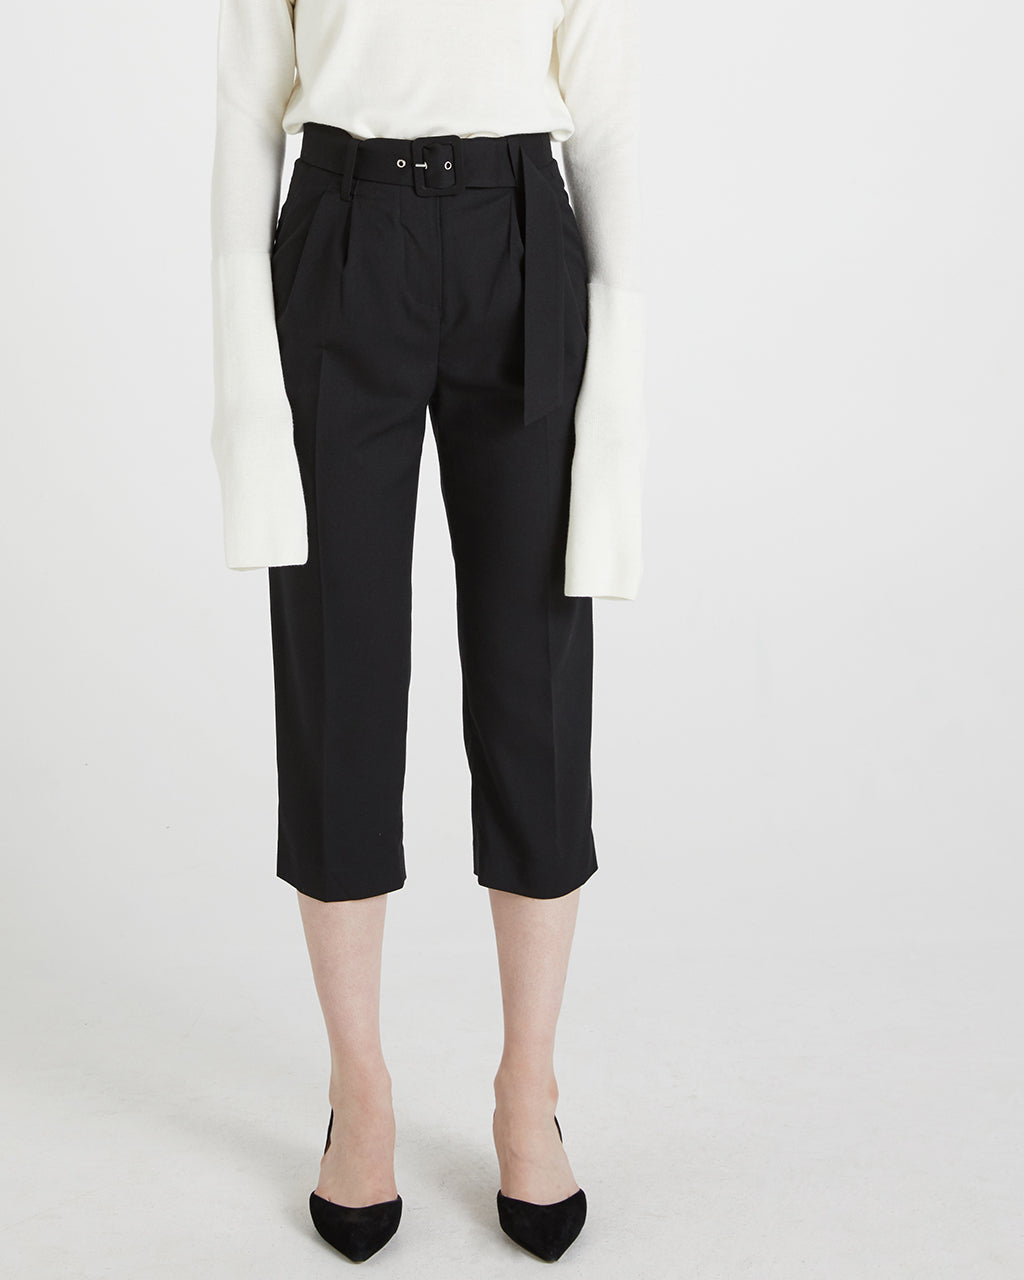 Belted Cropped Pants - Black